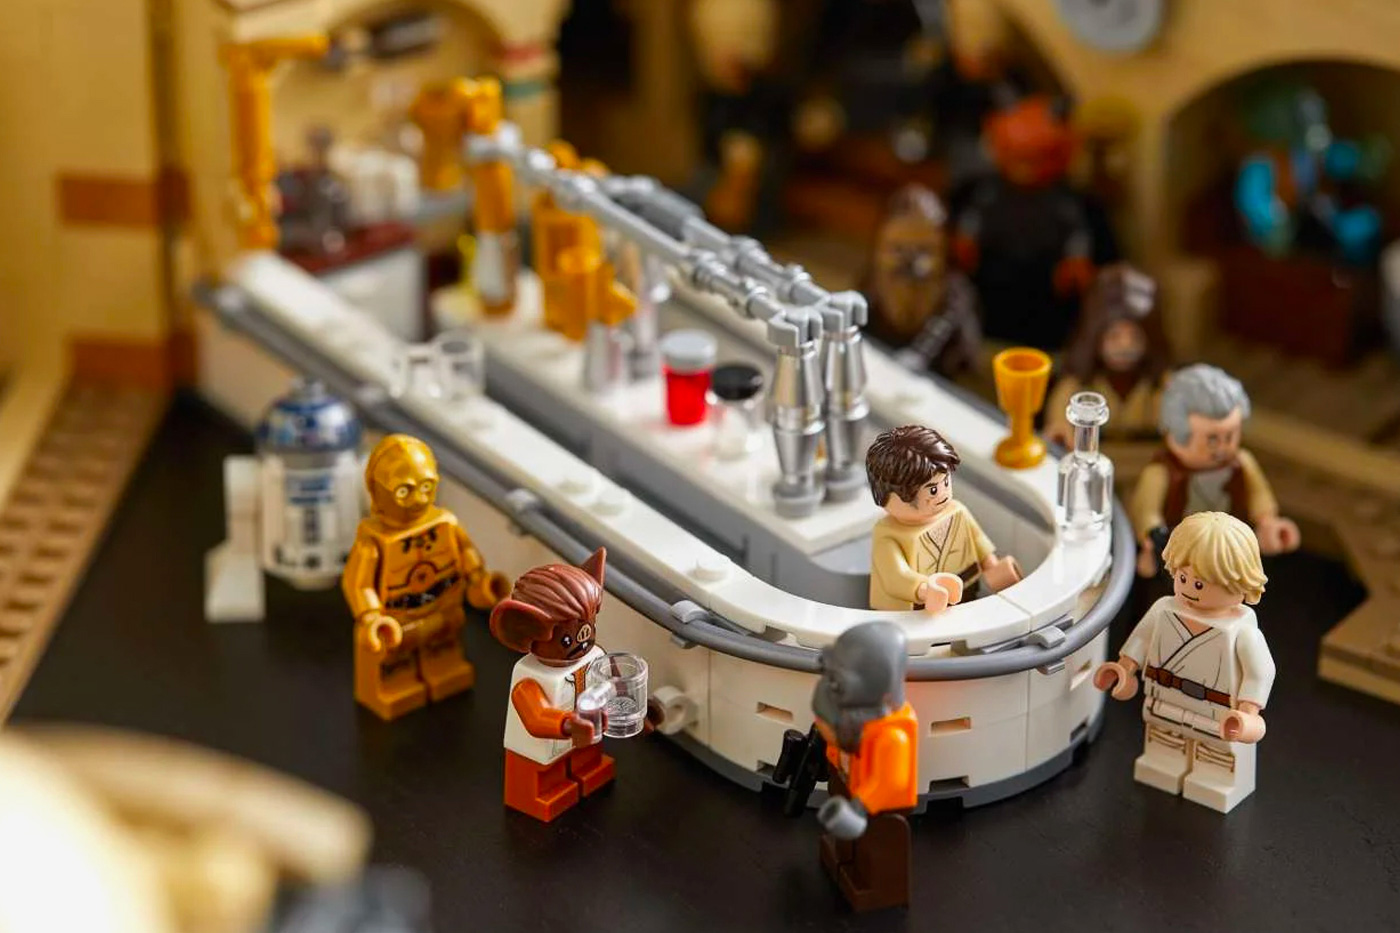 LEGO Launches Original Star Wars Cantina Set at werd.com